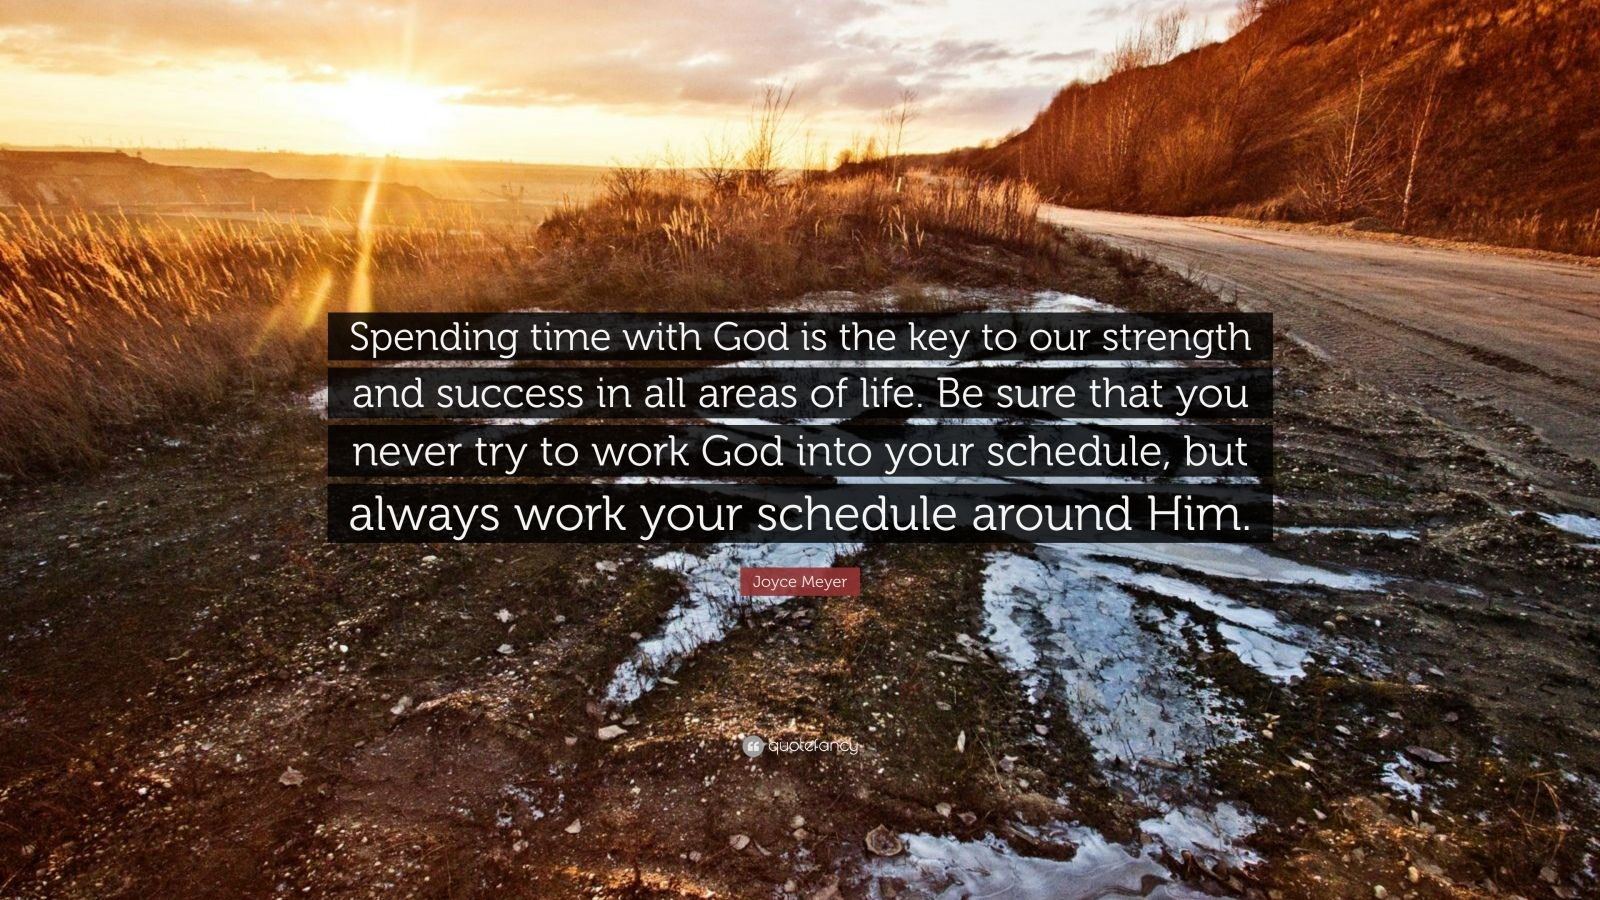 """Joyce Meyer Quote: """"Spending time with God is the key to our strength and success in all areas of life. Be sure that you never try to work God into your schedule, but always work your schedule around Him."""""""